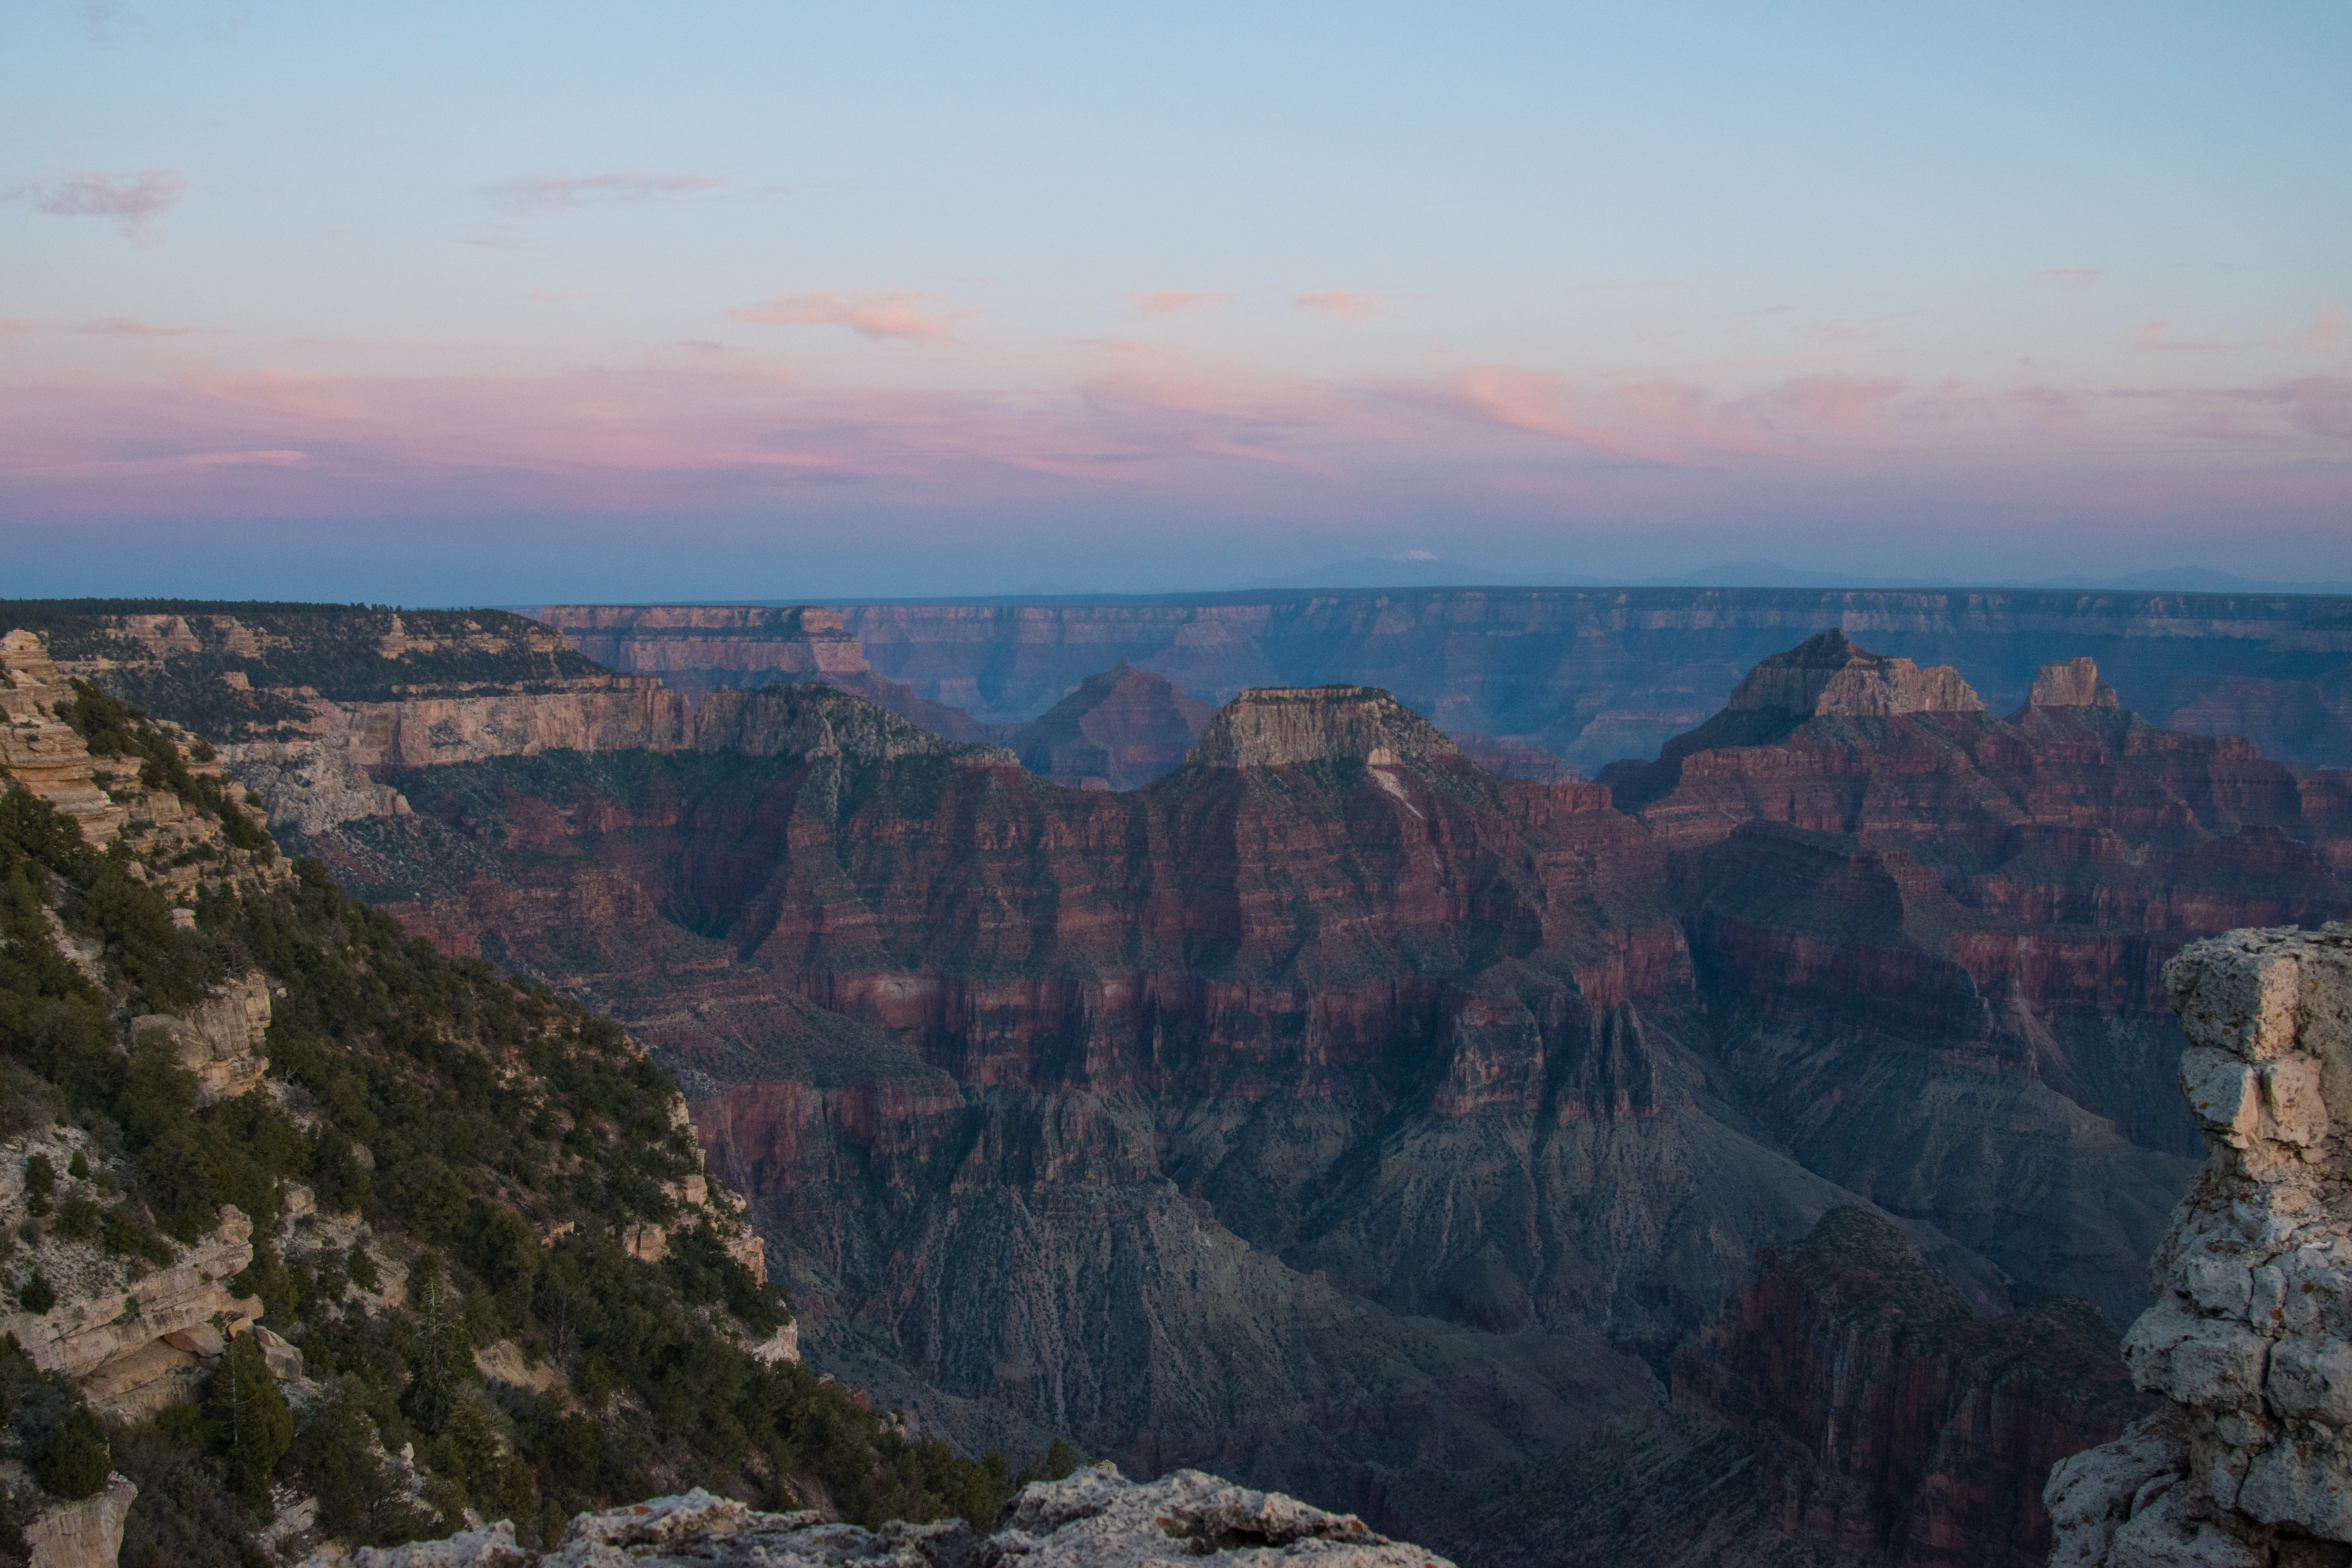 Colorful sunset over the Grand Canyon's mountain landscape